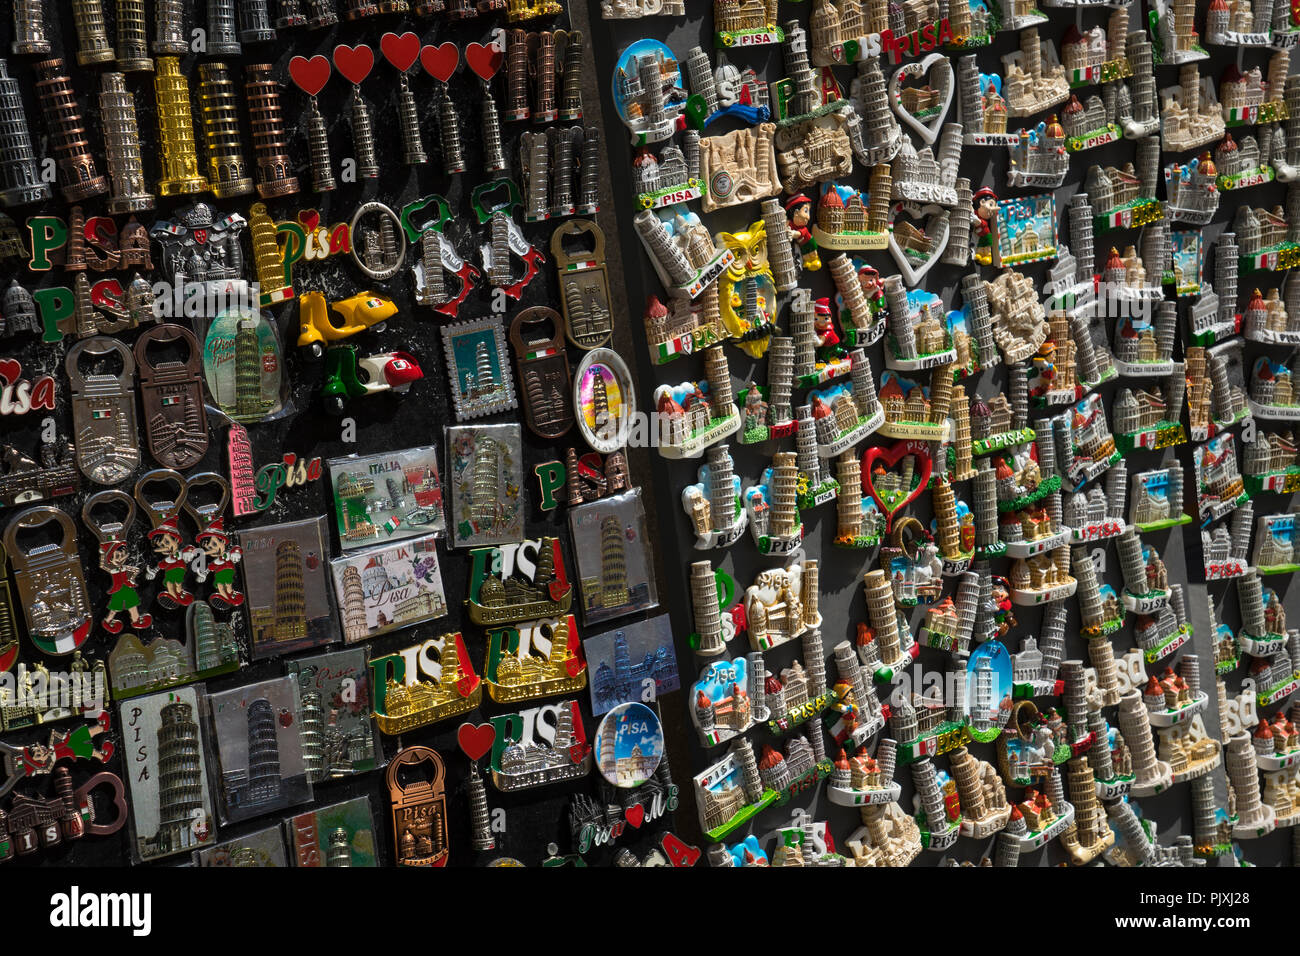 Tourist fridge magnets and souvenirs on sale in Piza,Tuscany Italy - Stock Image